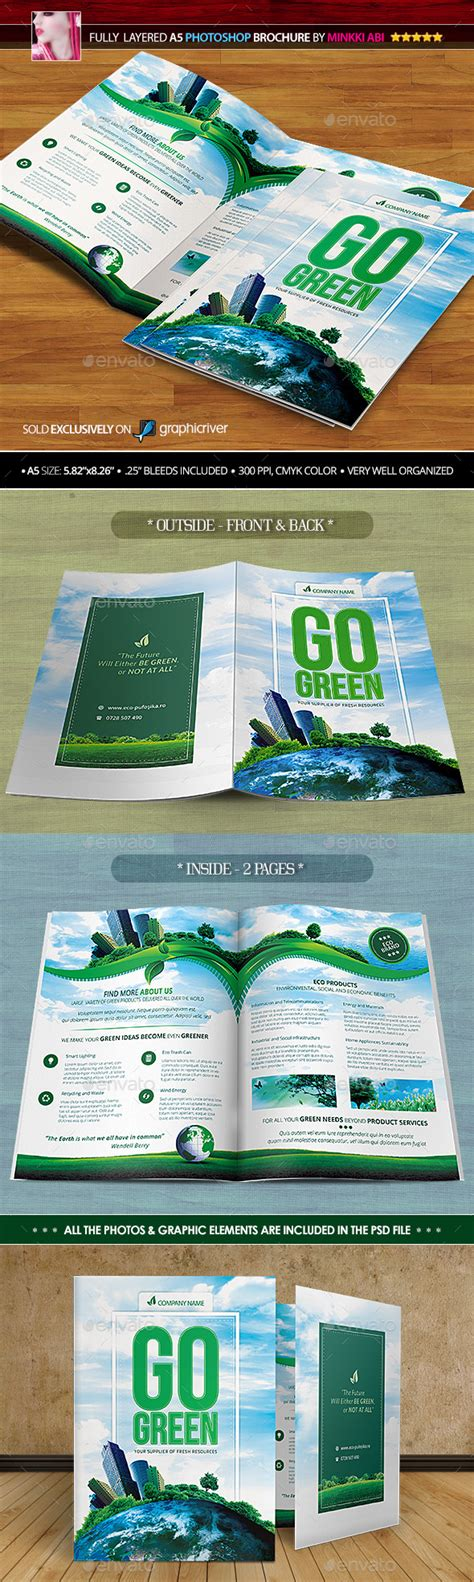 pengertian layout product contoh brochure restaurant contoh yes